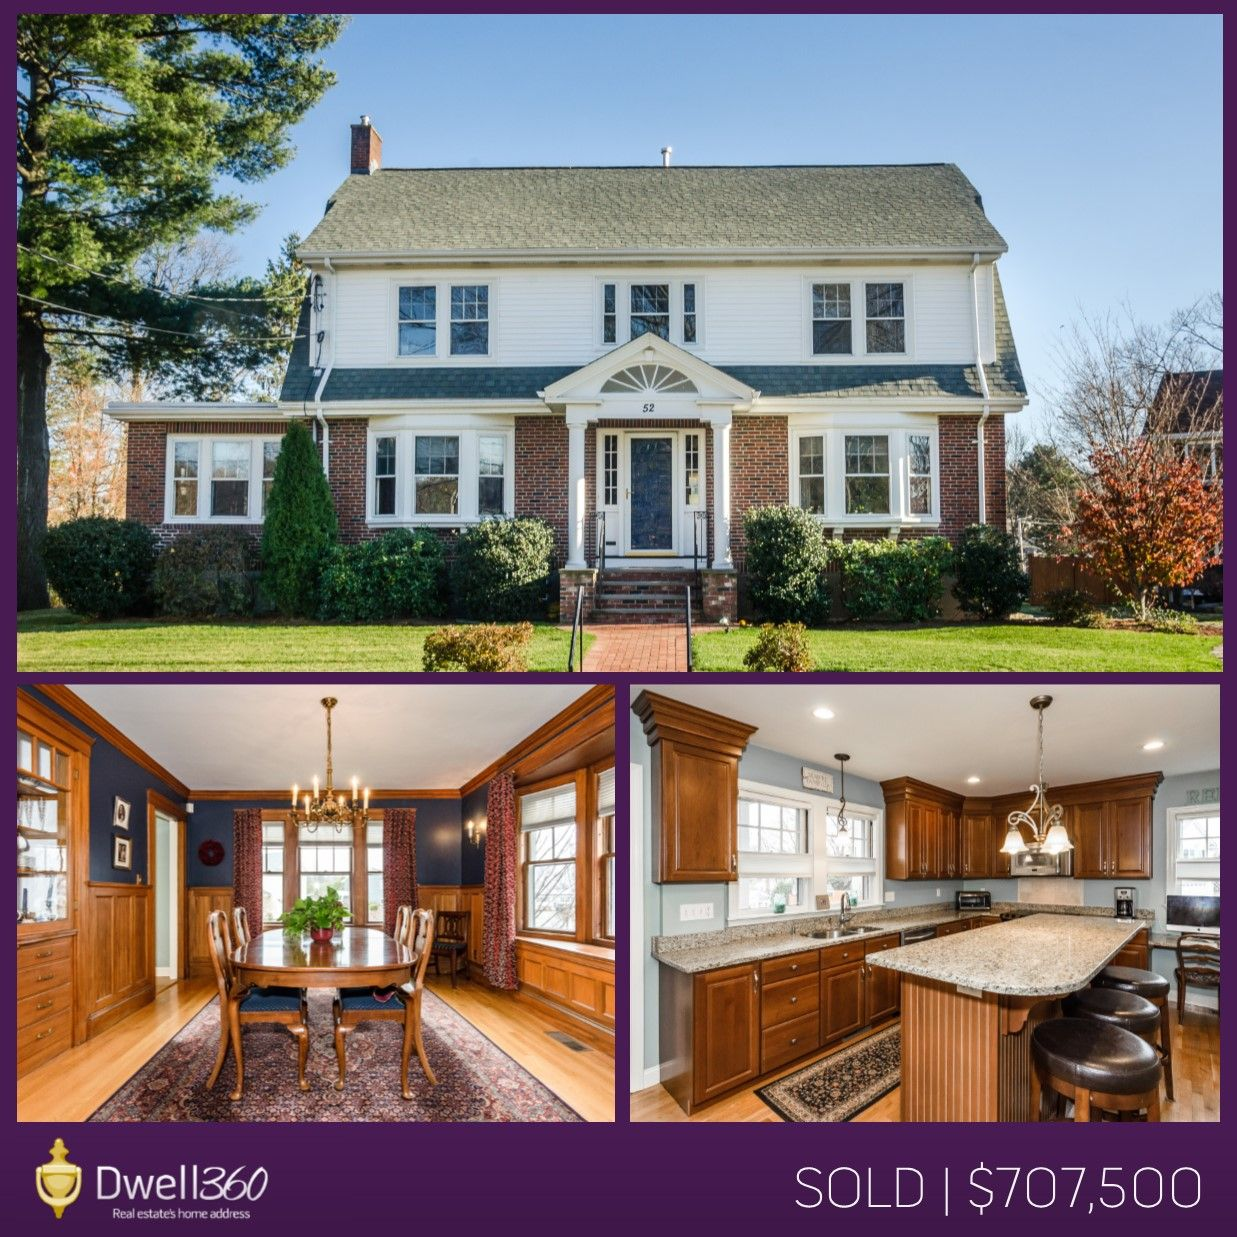 Sandra Siciliano, Realtor listed and sold this stunning center entrance Colonial in Waltham! #sold #Waltham #realestate #Dwell360 #SandraSiciliano #REALTOR